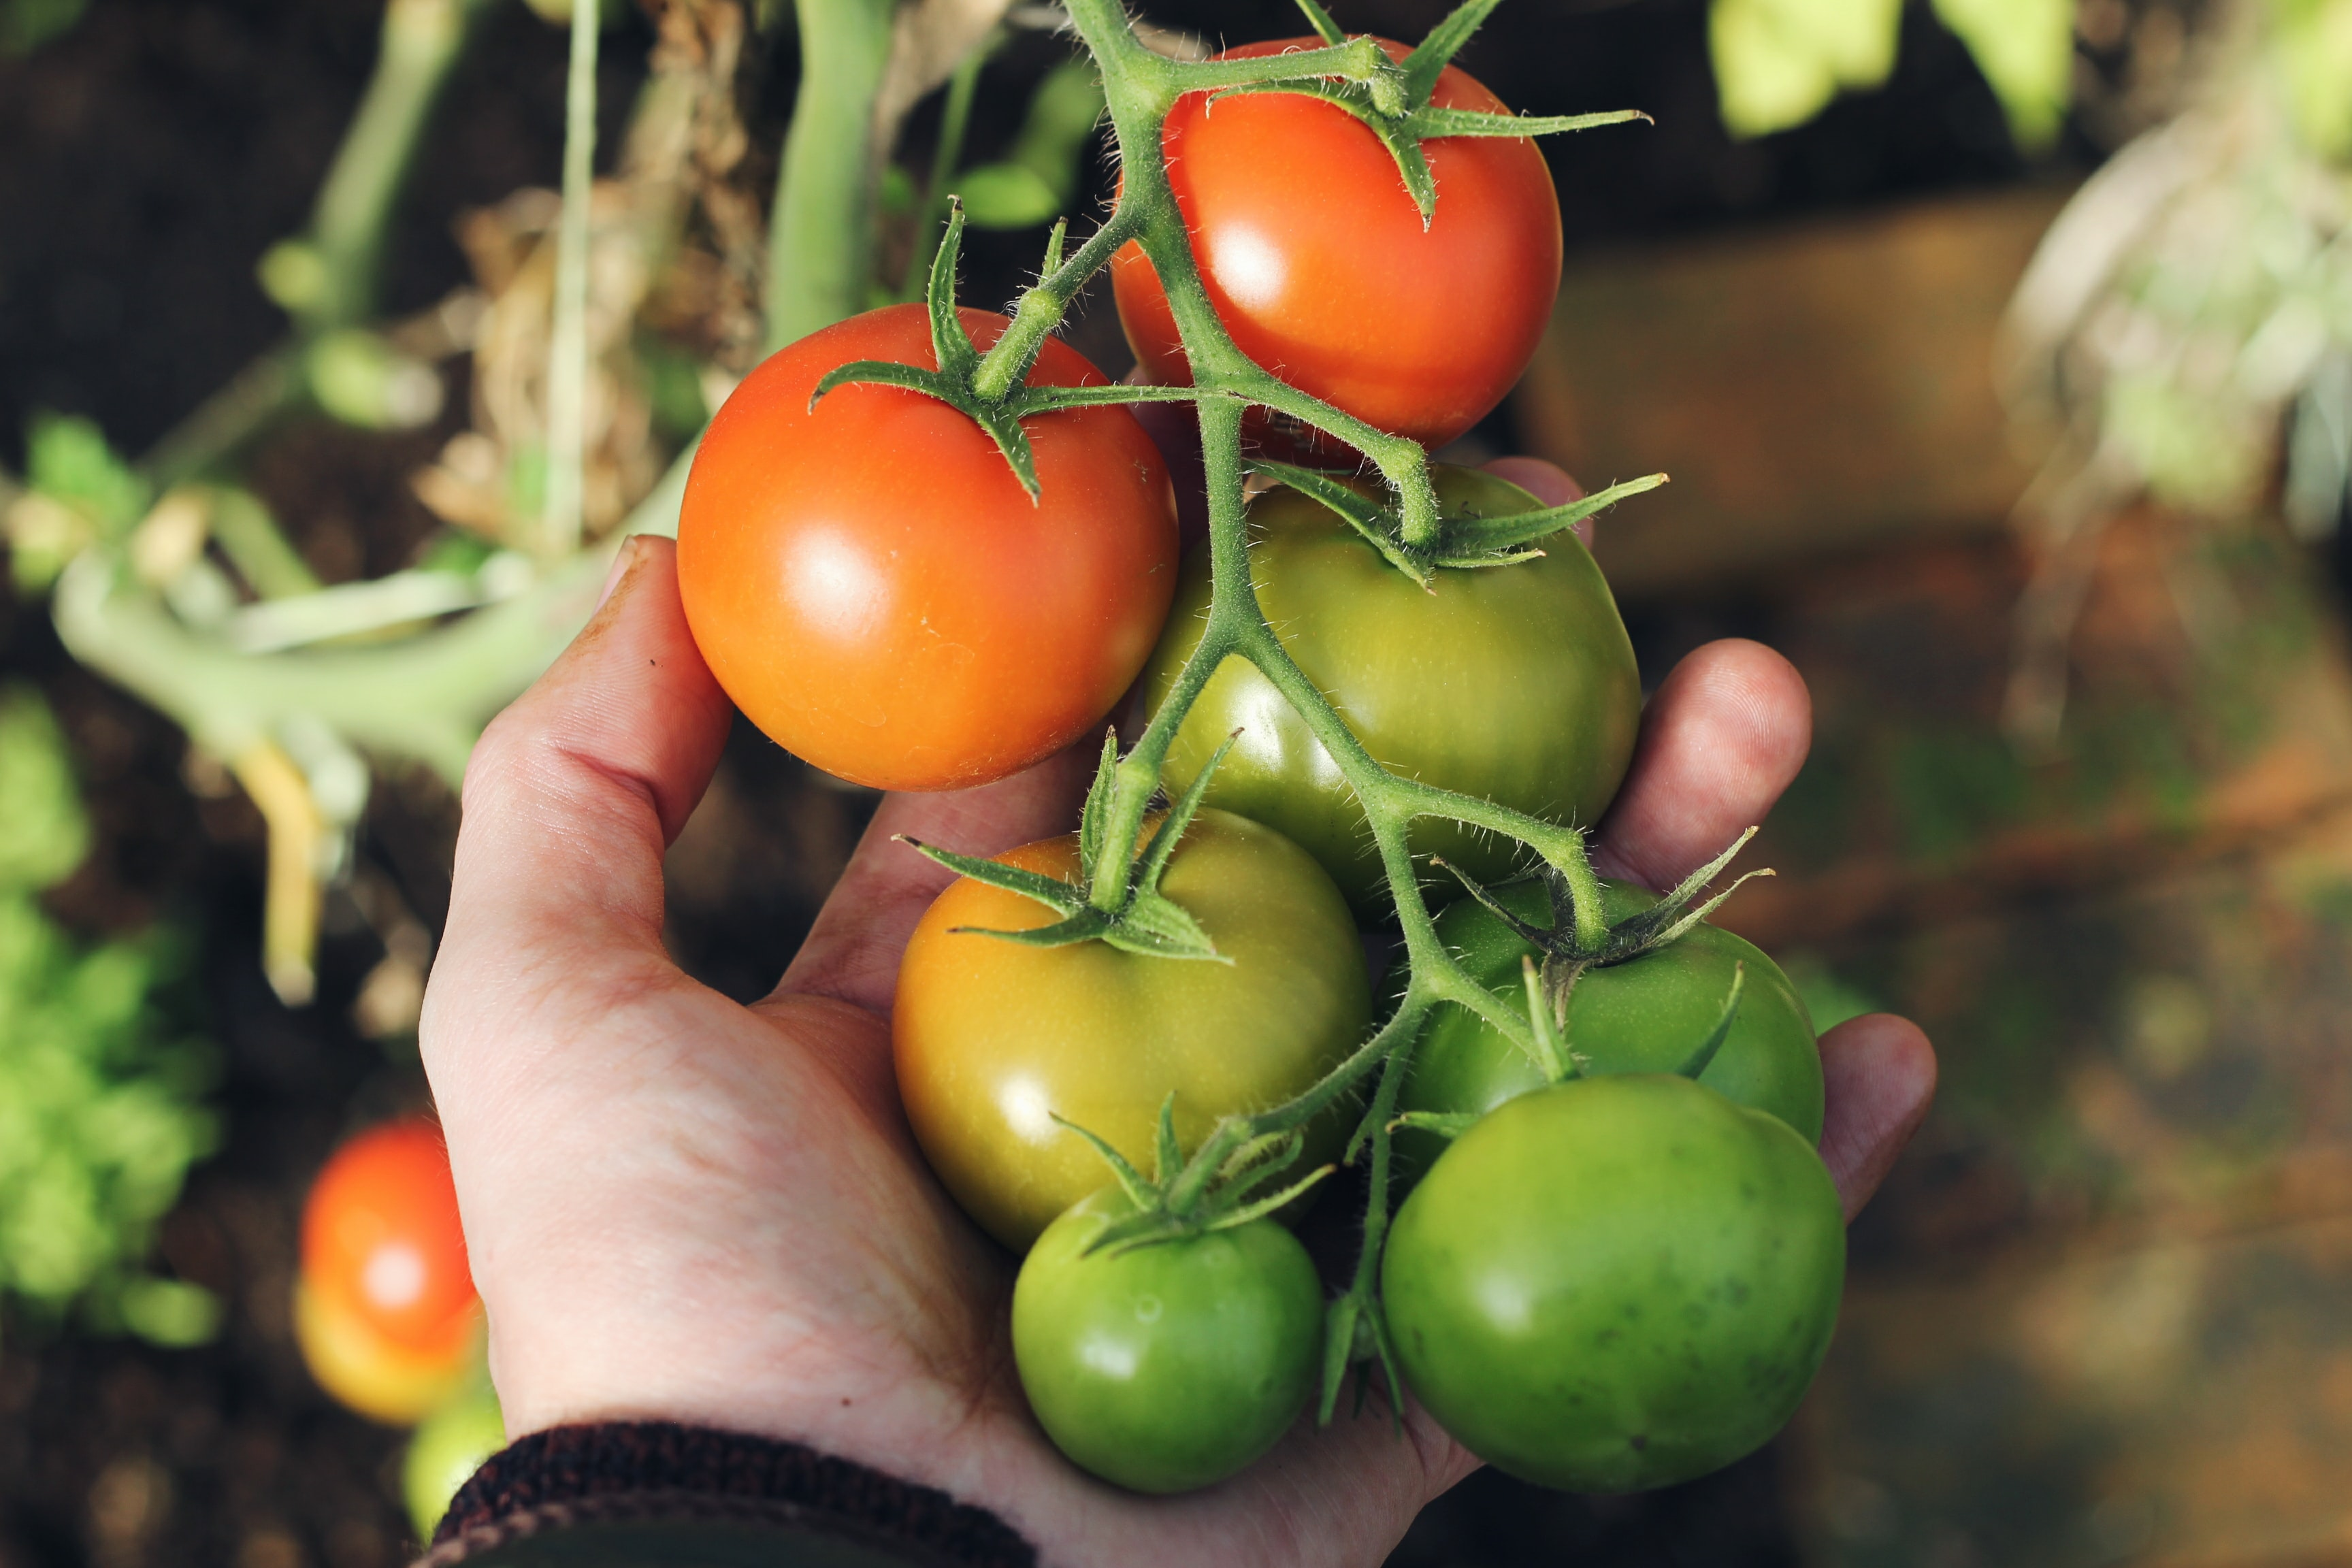 person holding green and red tomatoes